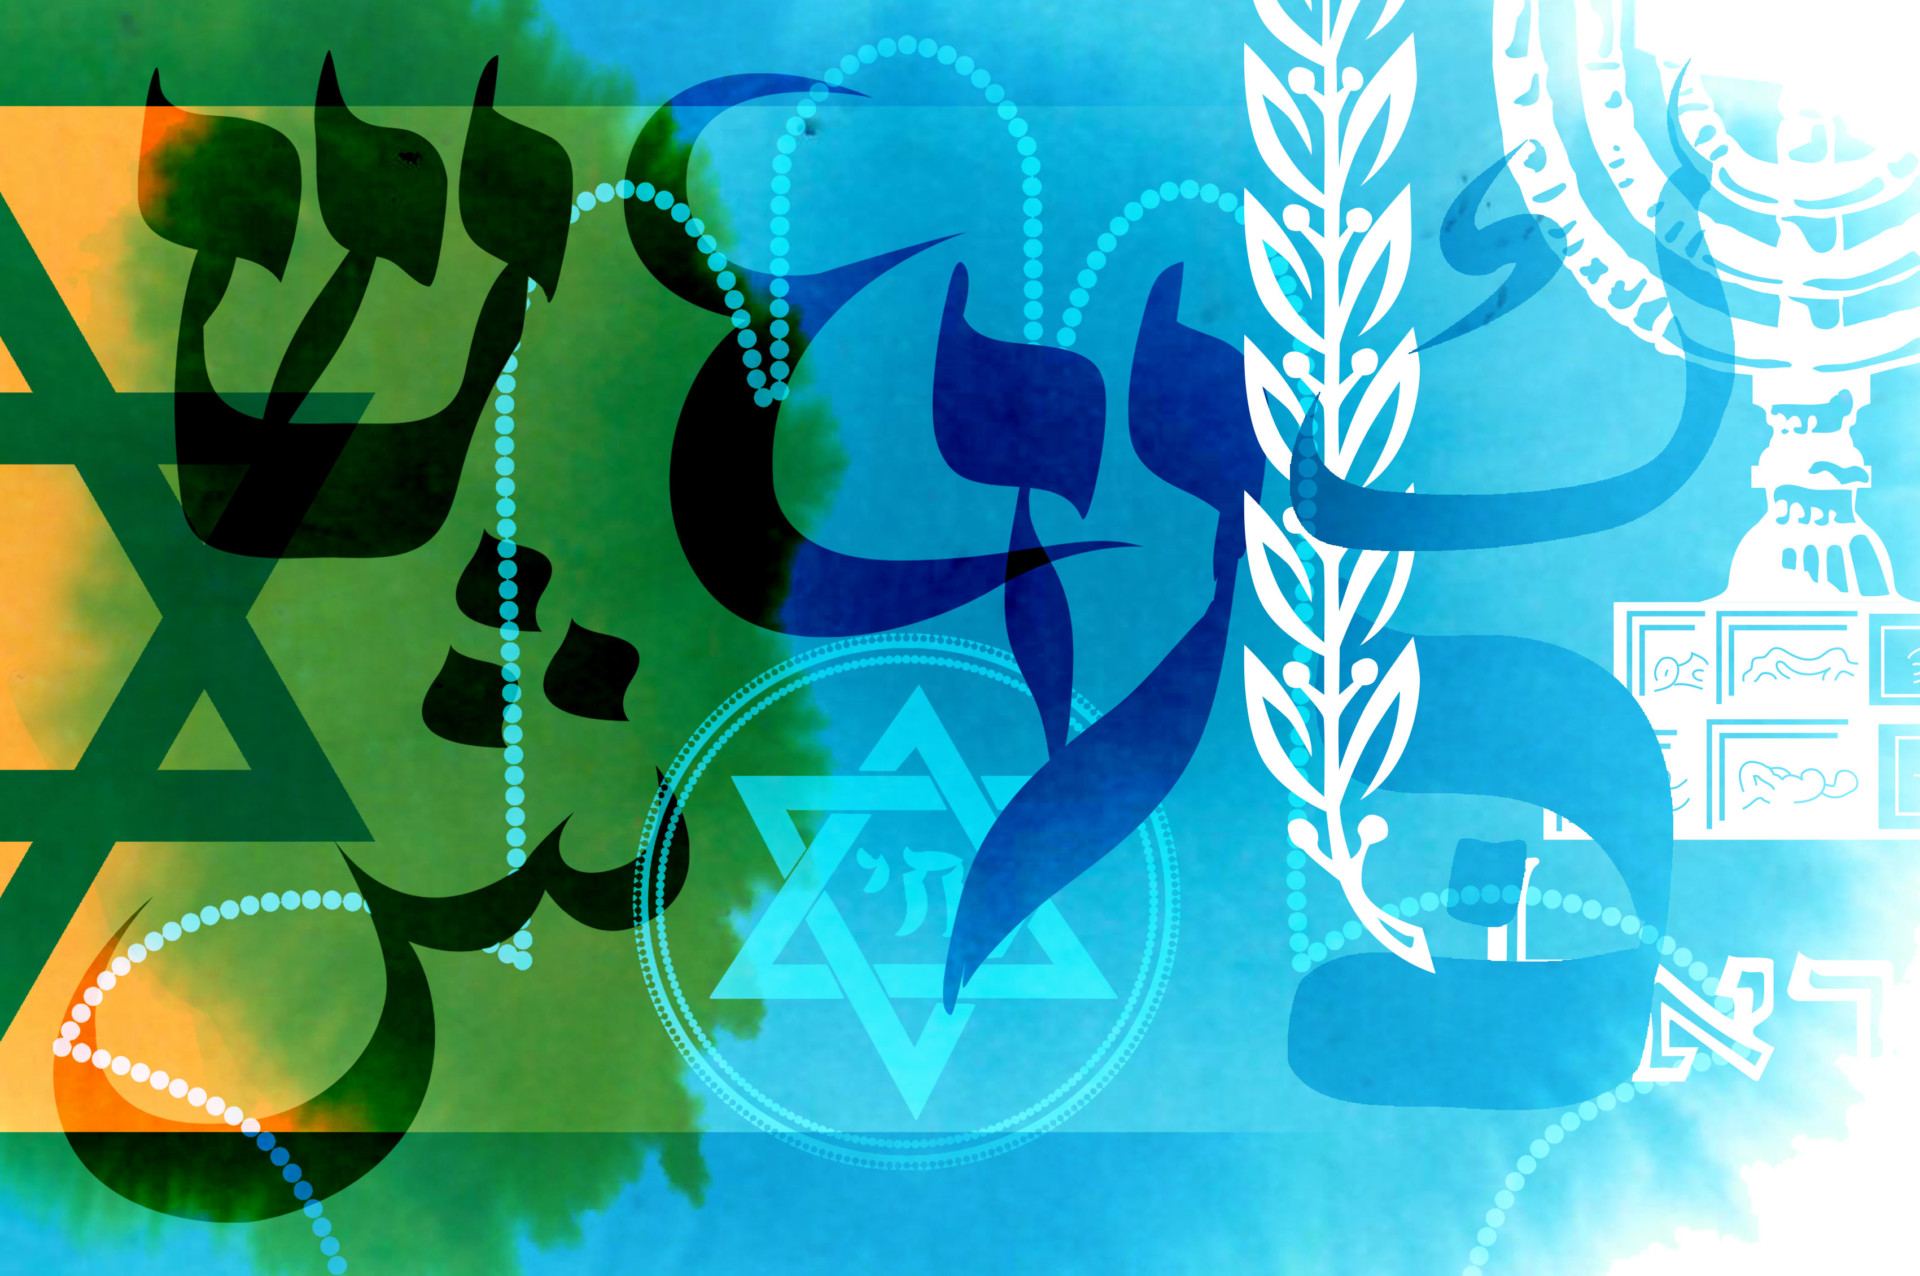 Yiddish and Arabic Share an Uncommon Commonality